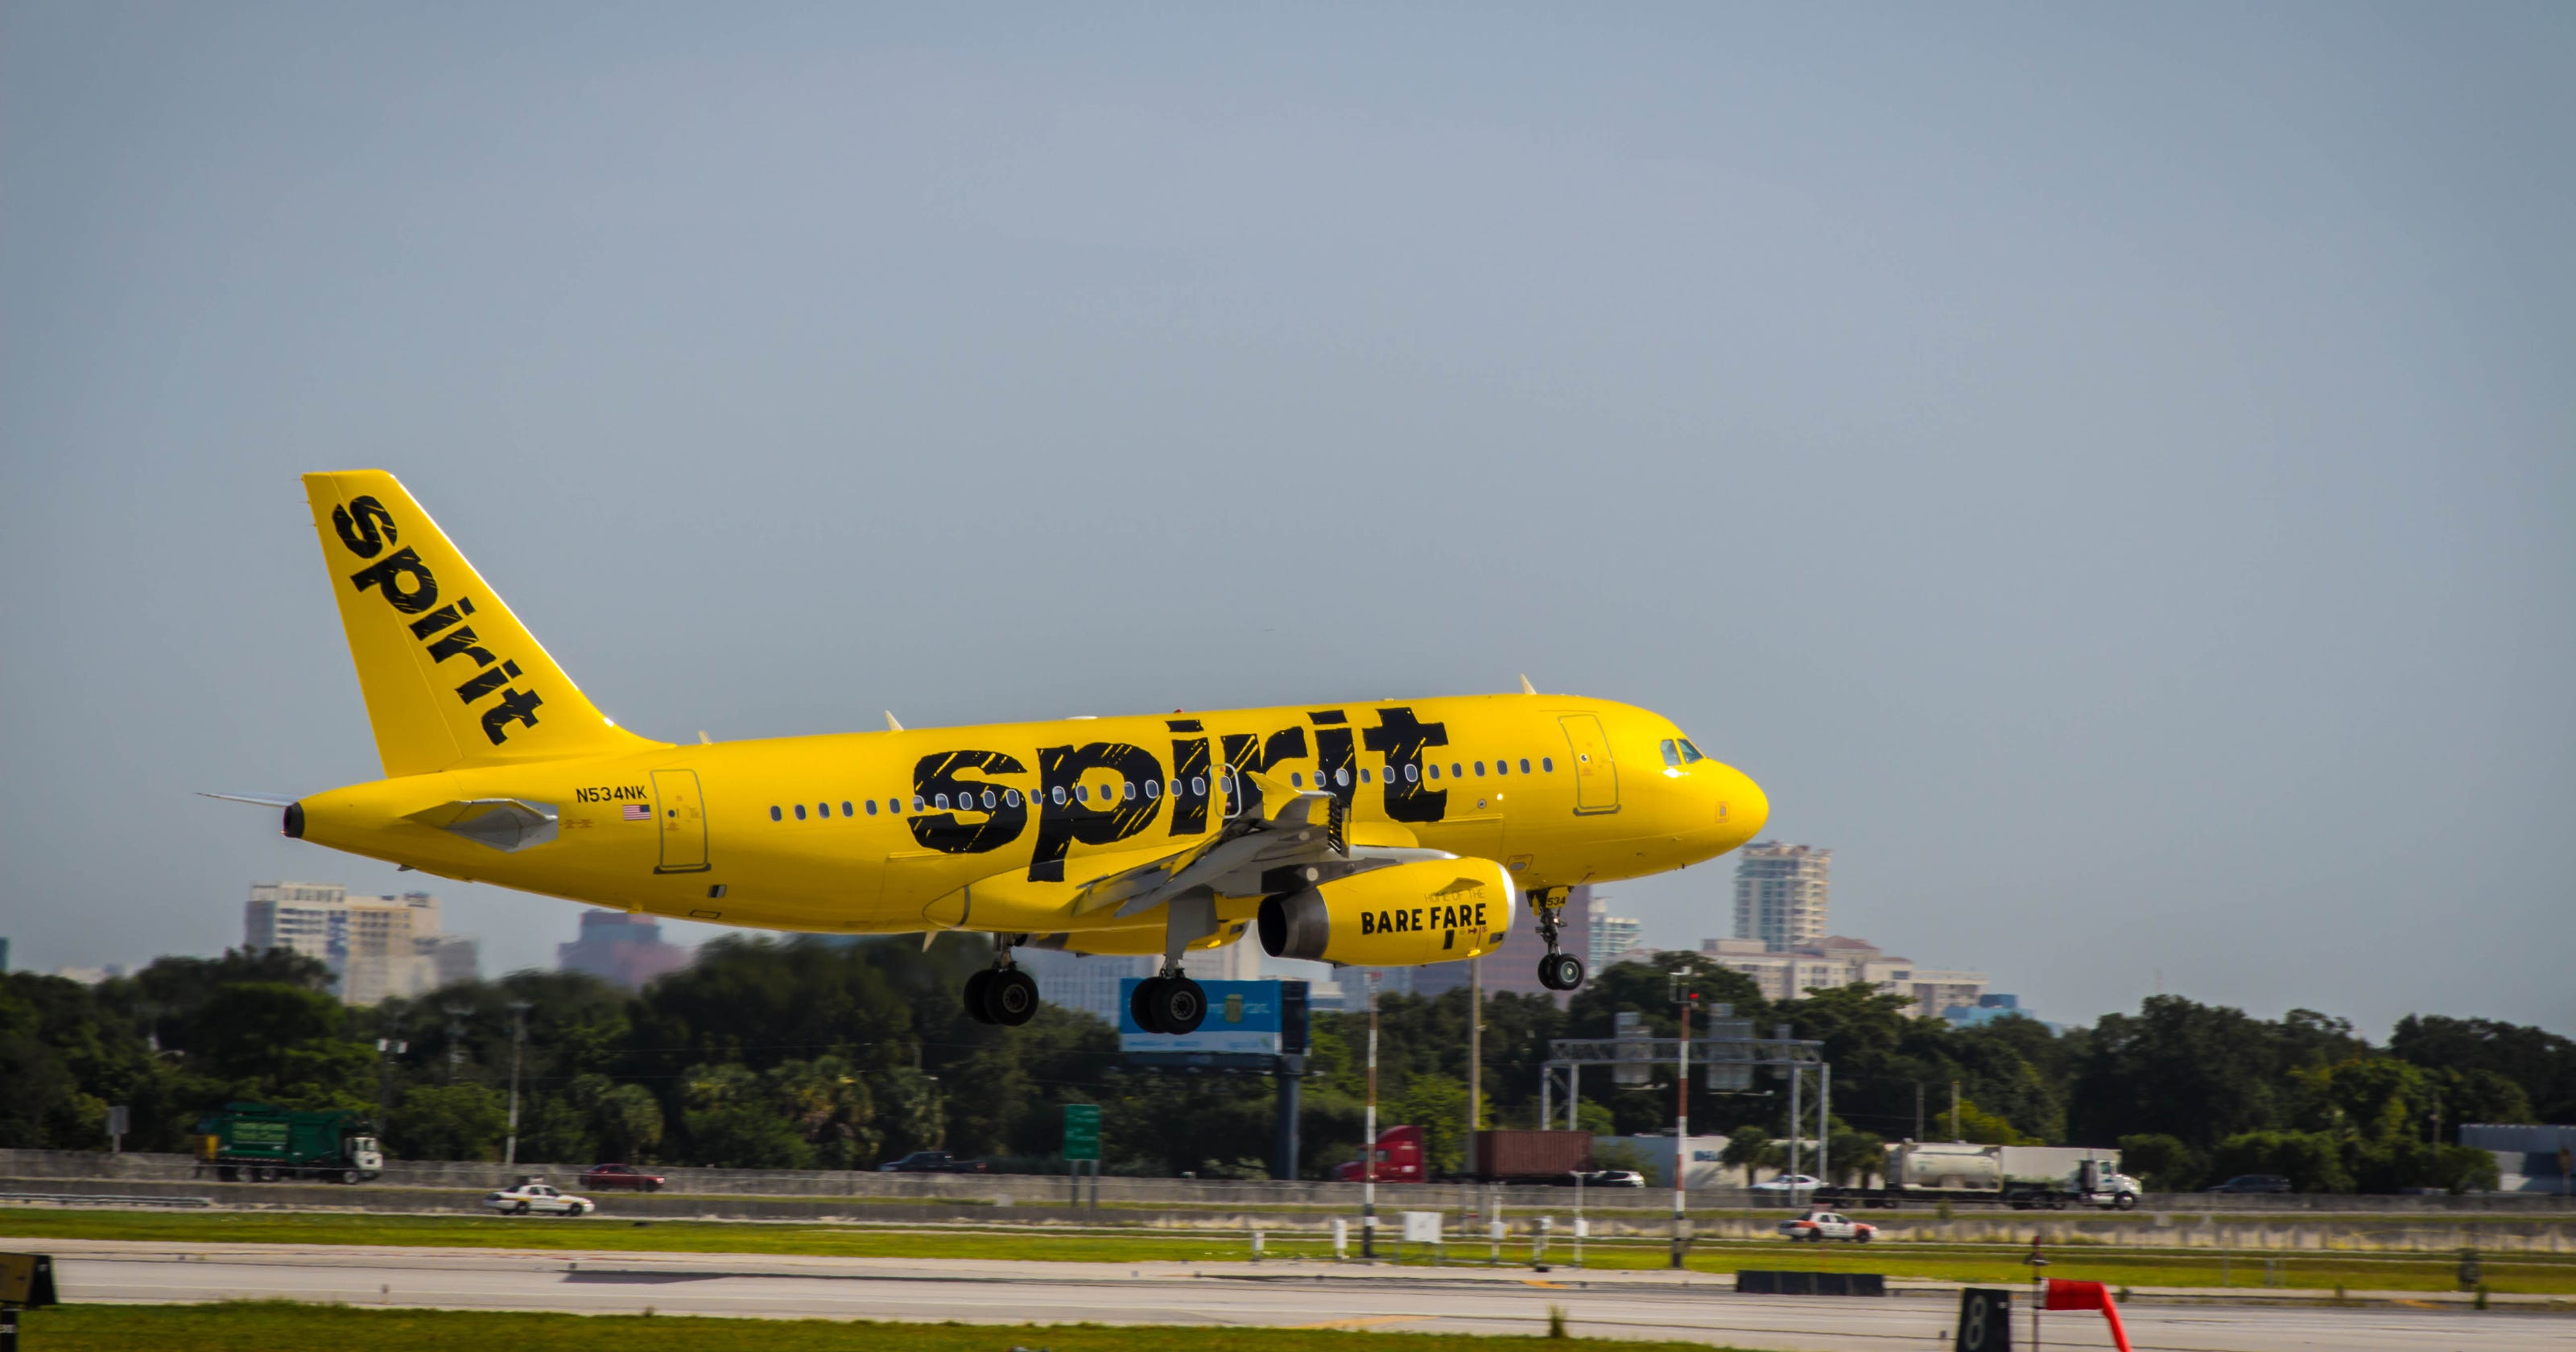 New airline service offers ultra low cost fares for Book a flight with spirit airlines